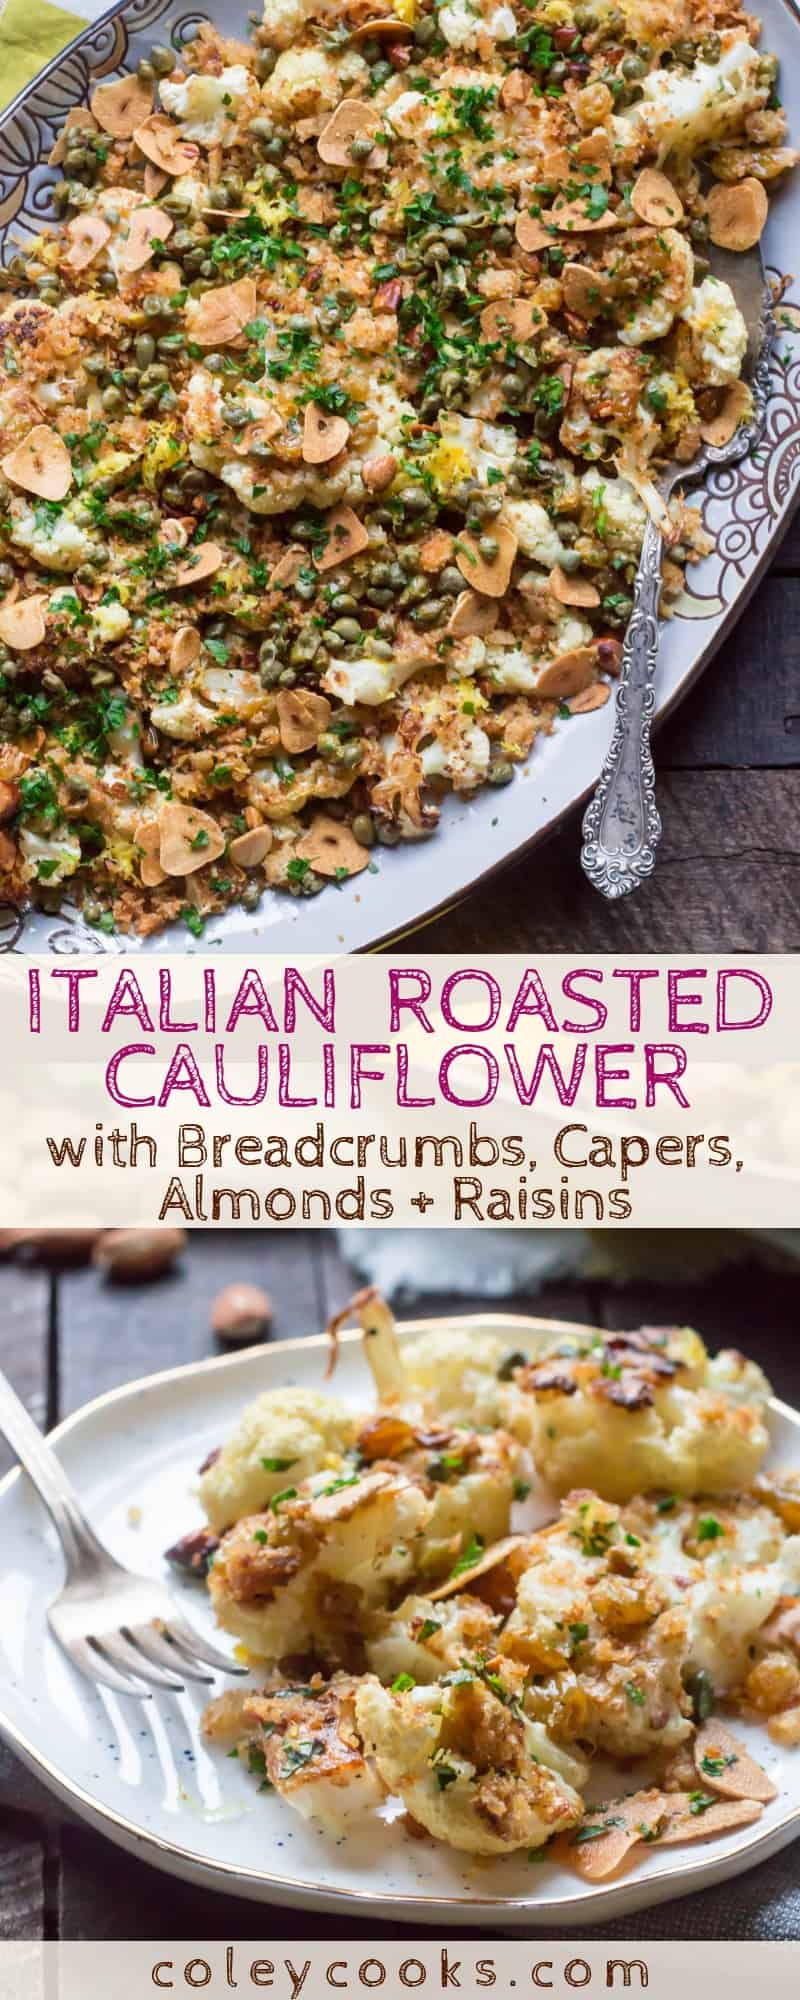 Italian Roasted Cauliflower with Breadcrumbs, Capers, Almonds + Raisins | Delicious cauliflower recipe with tons of texture and flavor perfect for a Thanksgiving side! #thanksgiving #recipe #side #cauliflower #easy #Italian #healthy | ColeyCooks.com